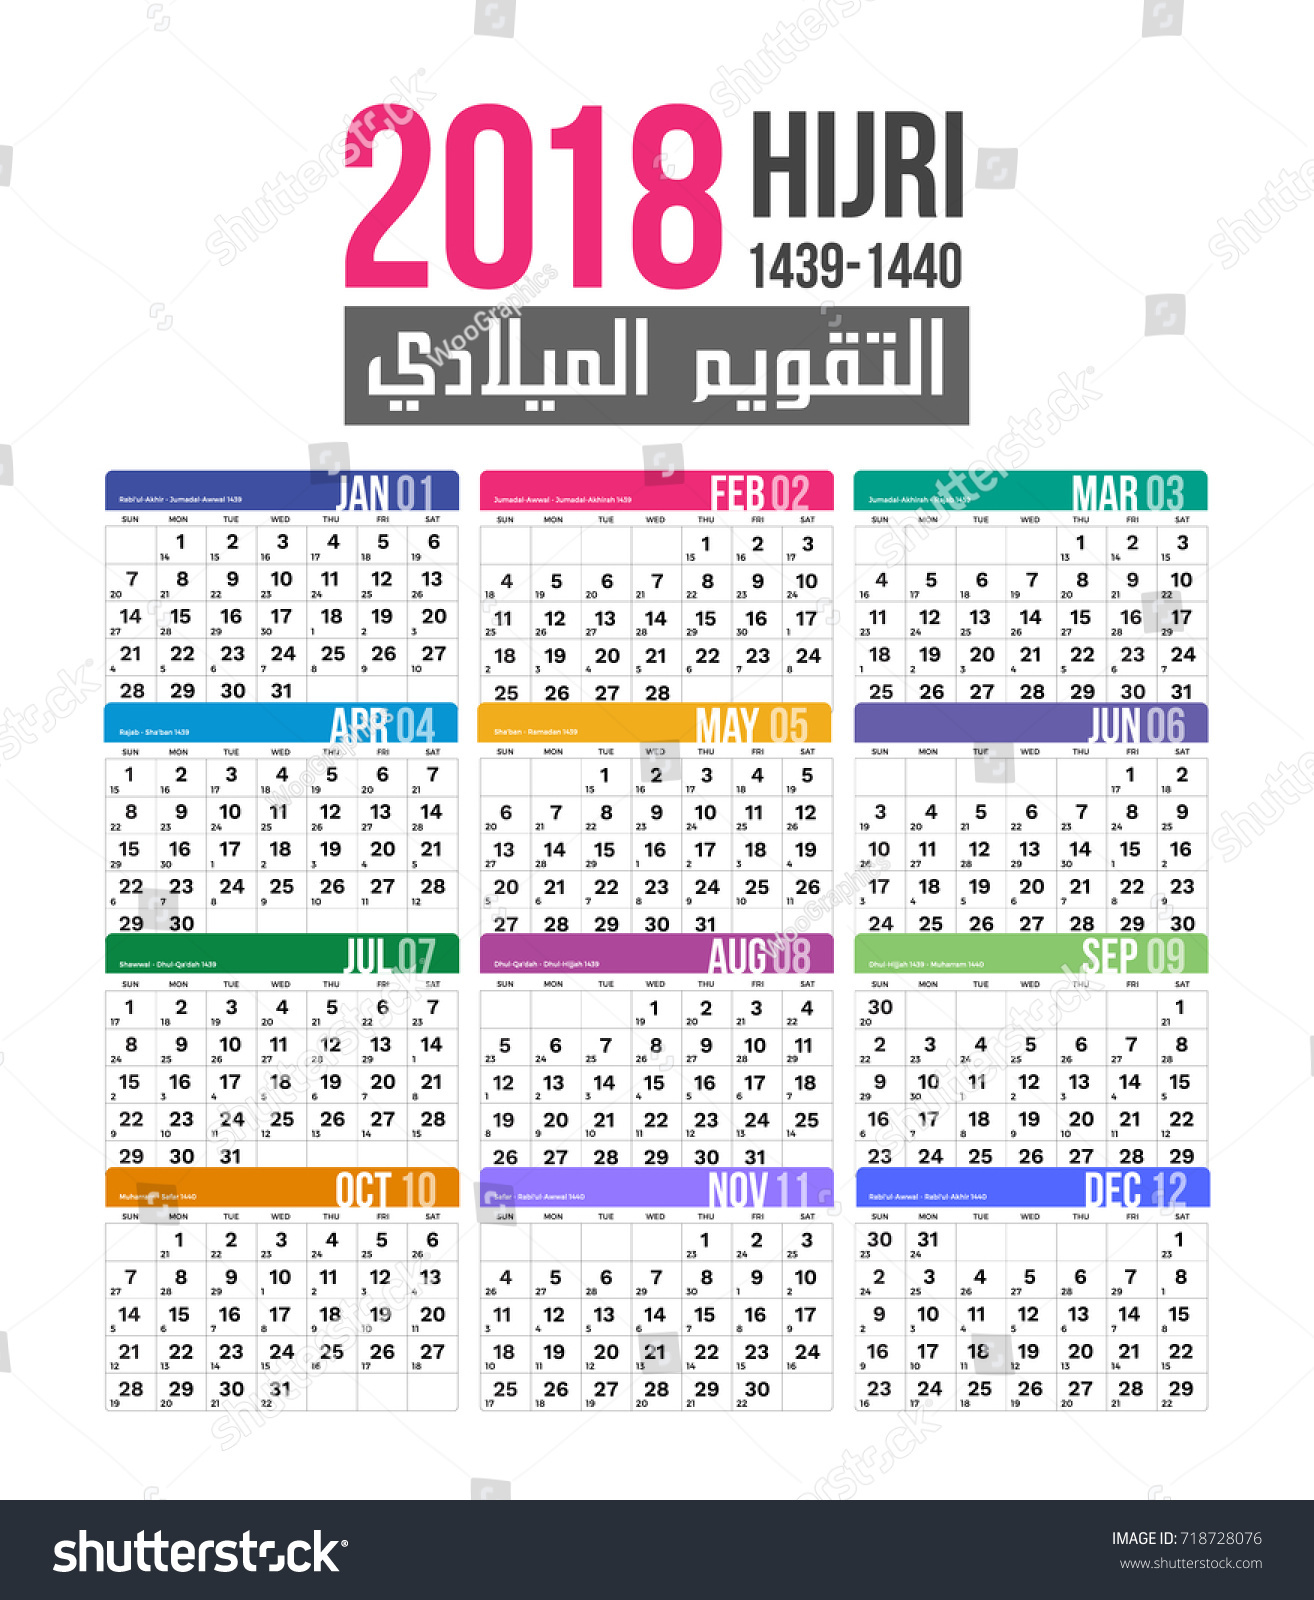 2018 islamic hijri calendar template design version 4